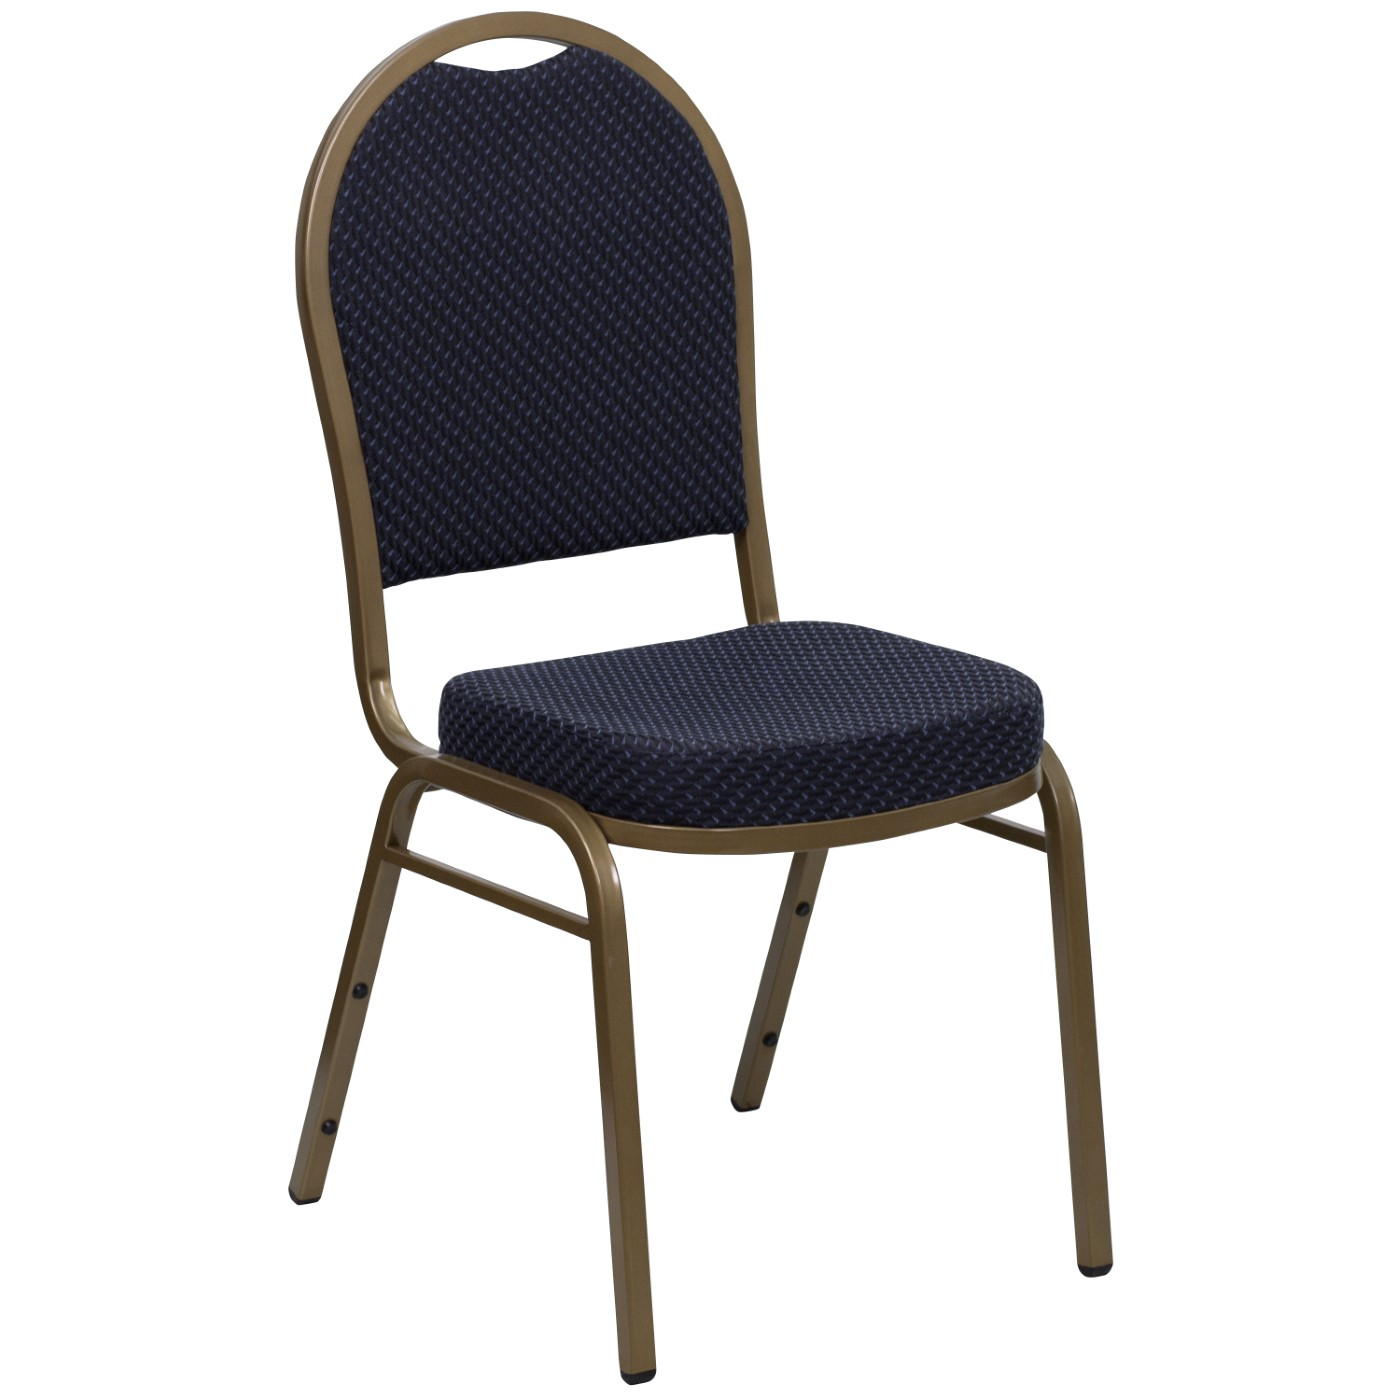 TOUGH ENOUGH Series Dome Back Stacking Banquet Chair in Navy Patterned Fabric - Gold Frame